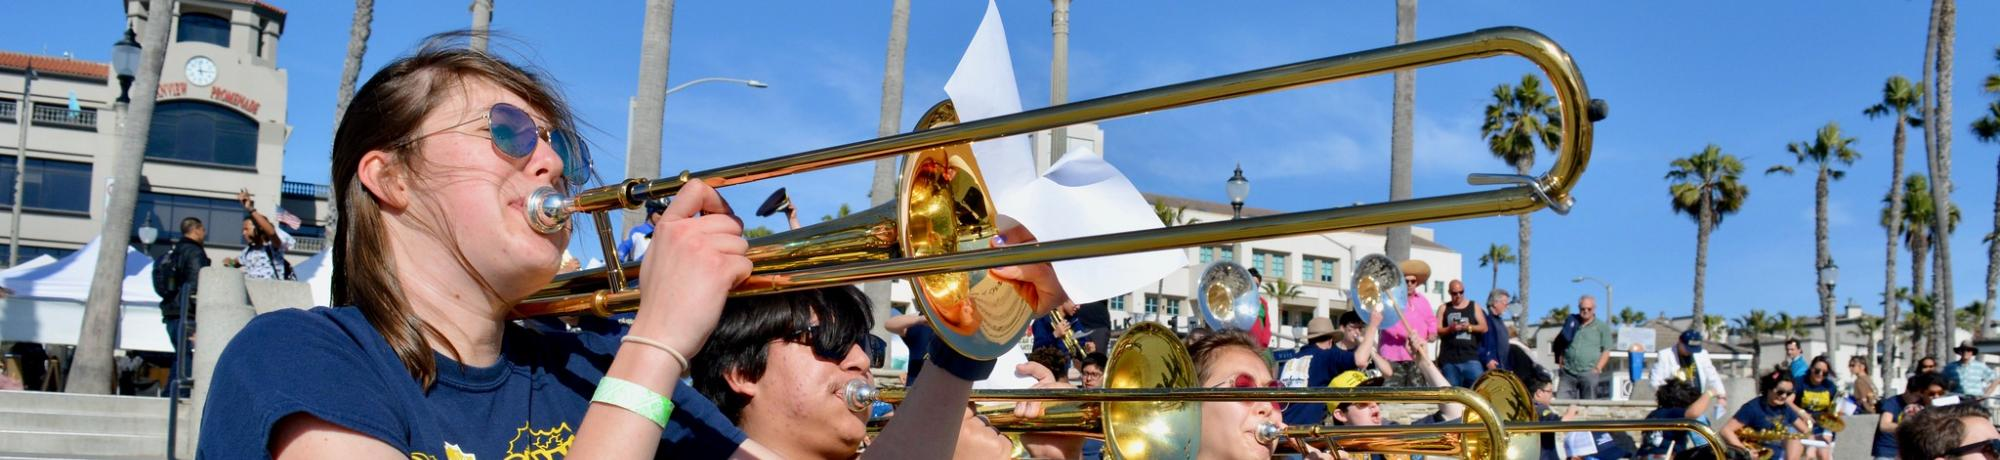 Trombone players at a beach rally in Anaheim, CA.